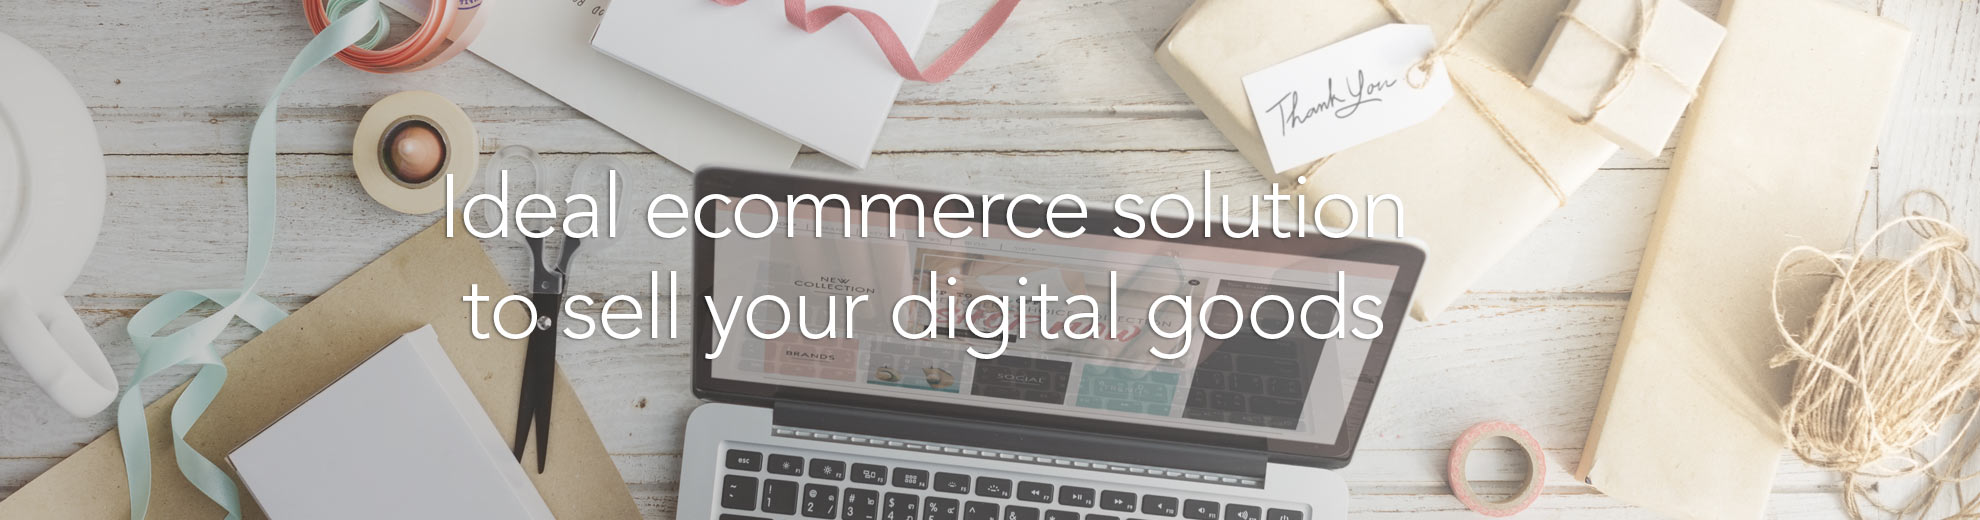 e commerce tool